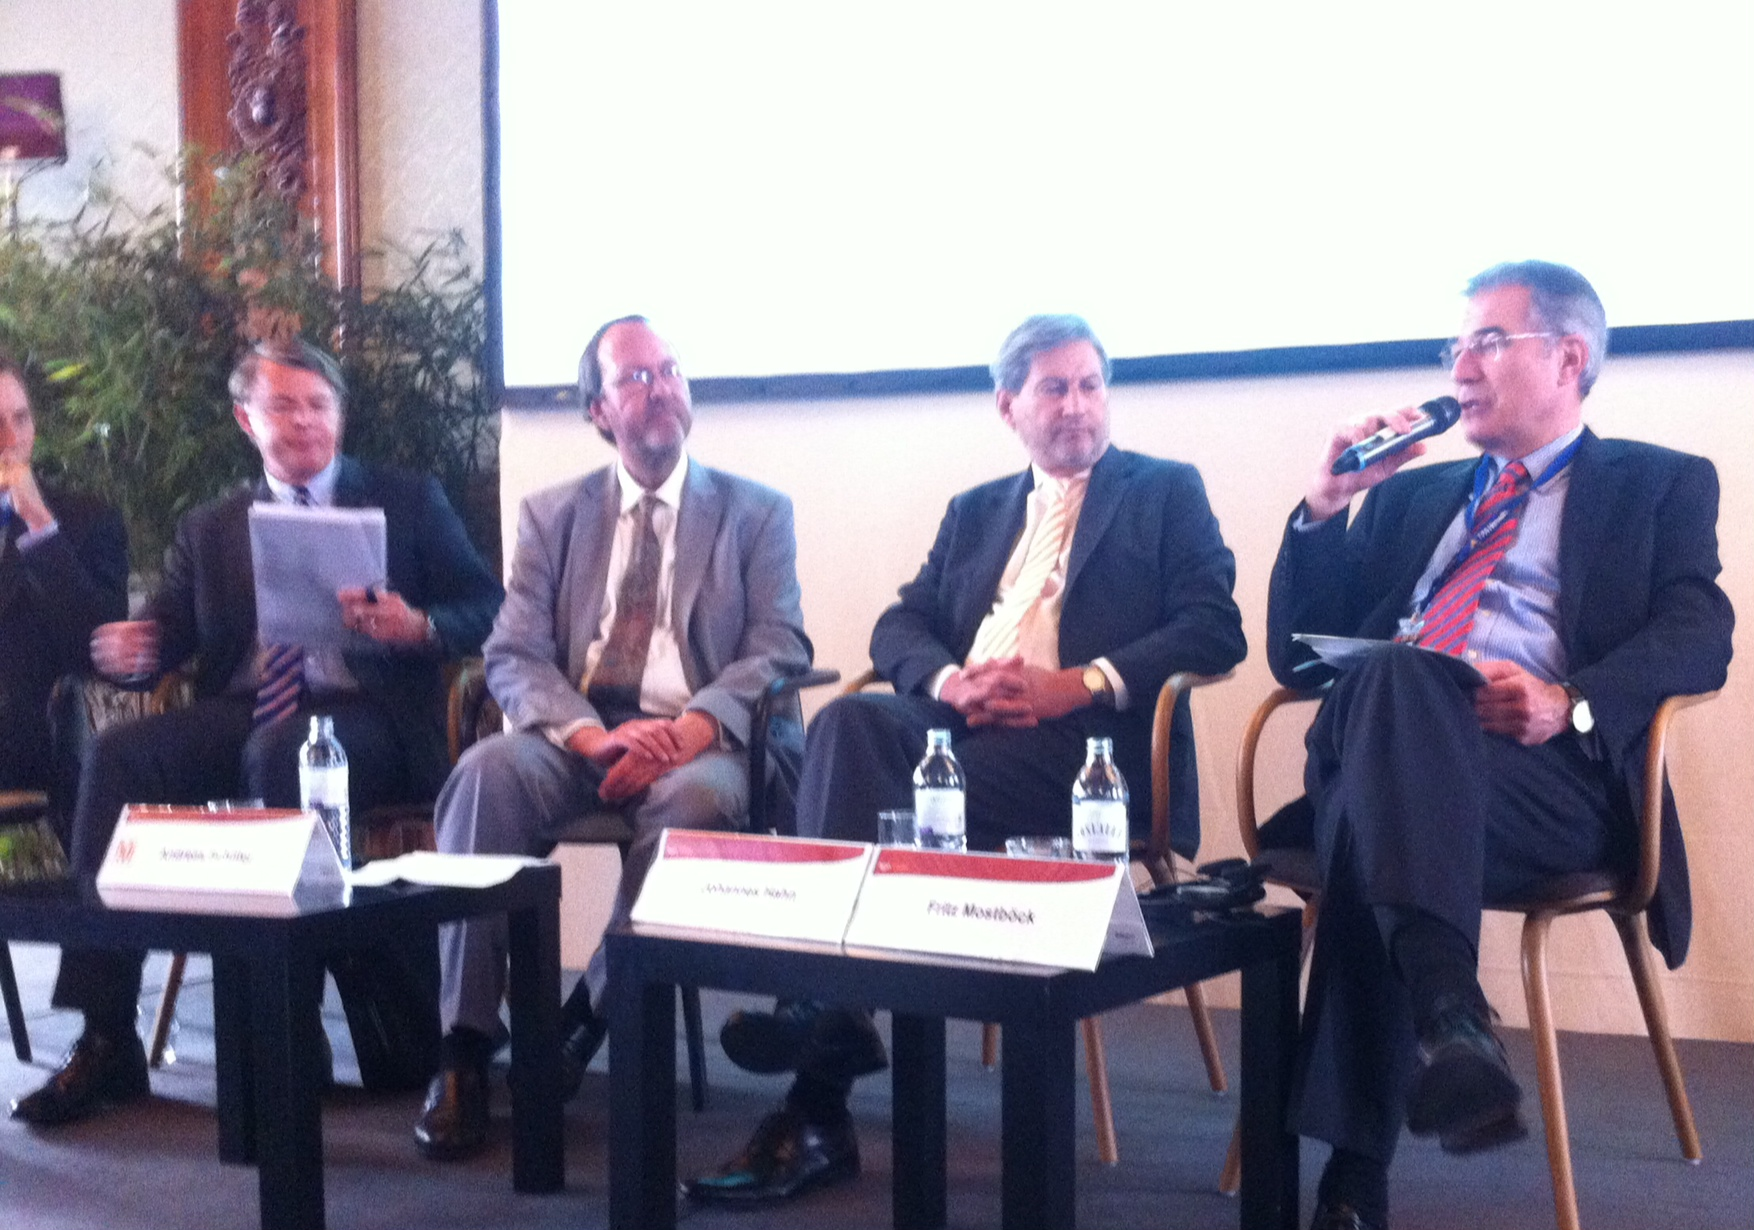 Regional Policy as main investment tool: Commissioner Hahn at international business conference